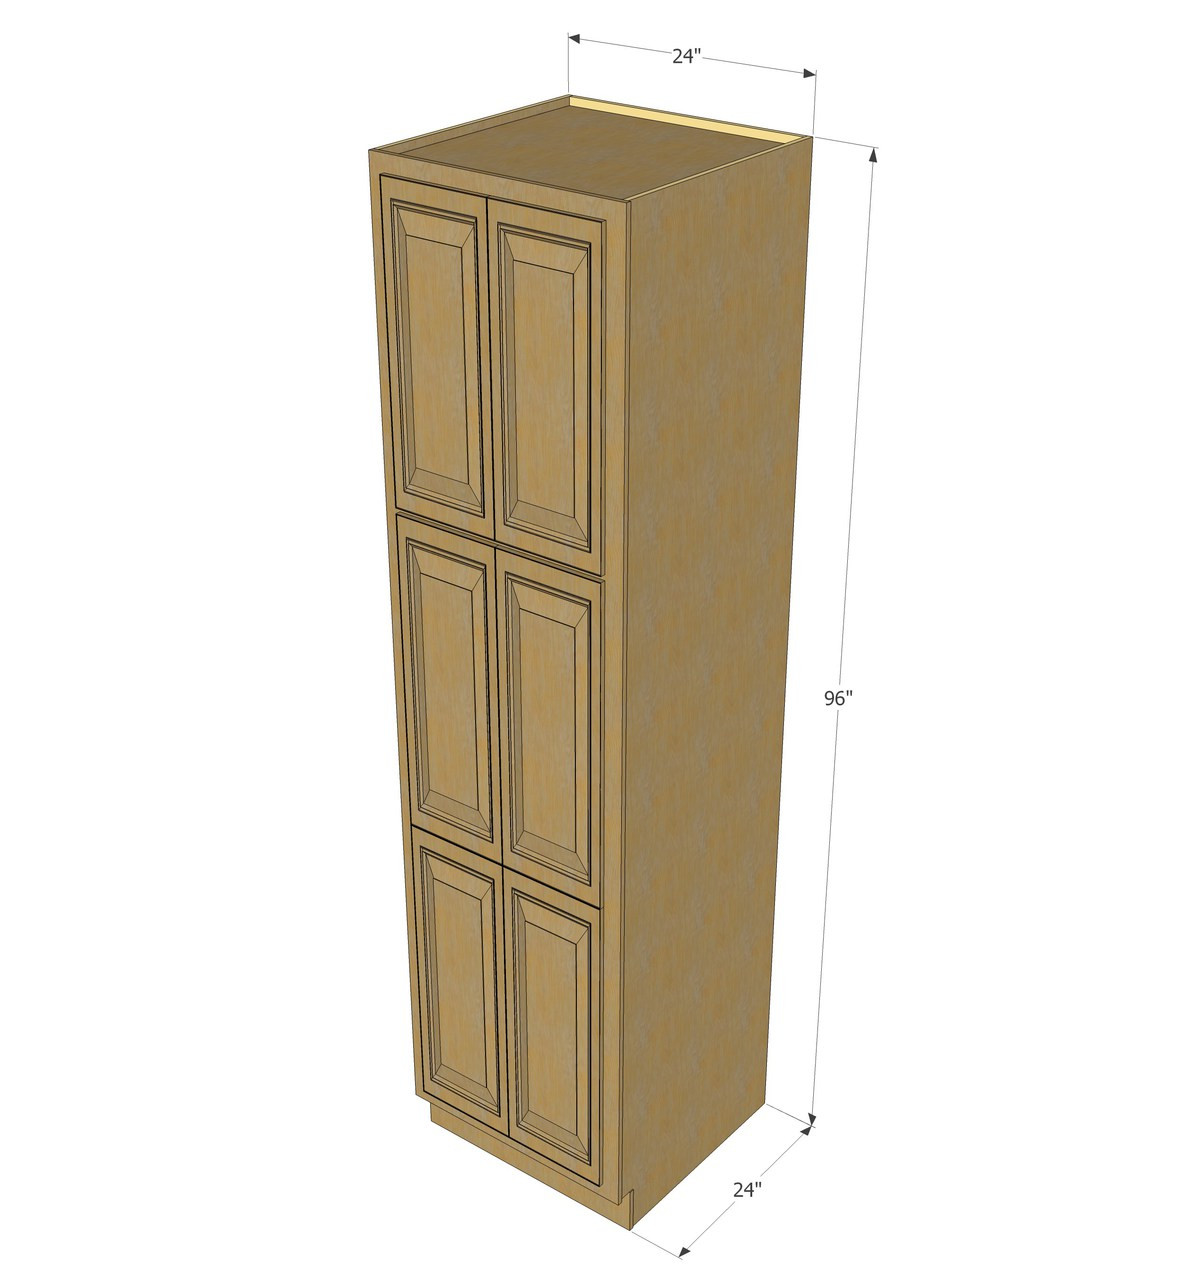 Rta Kitchen Cabinets Free Shipping Regal Oak Pantry Cabinet Unit 24 Inch Wide X 96 Inch High